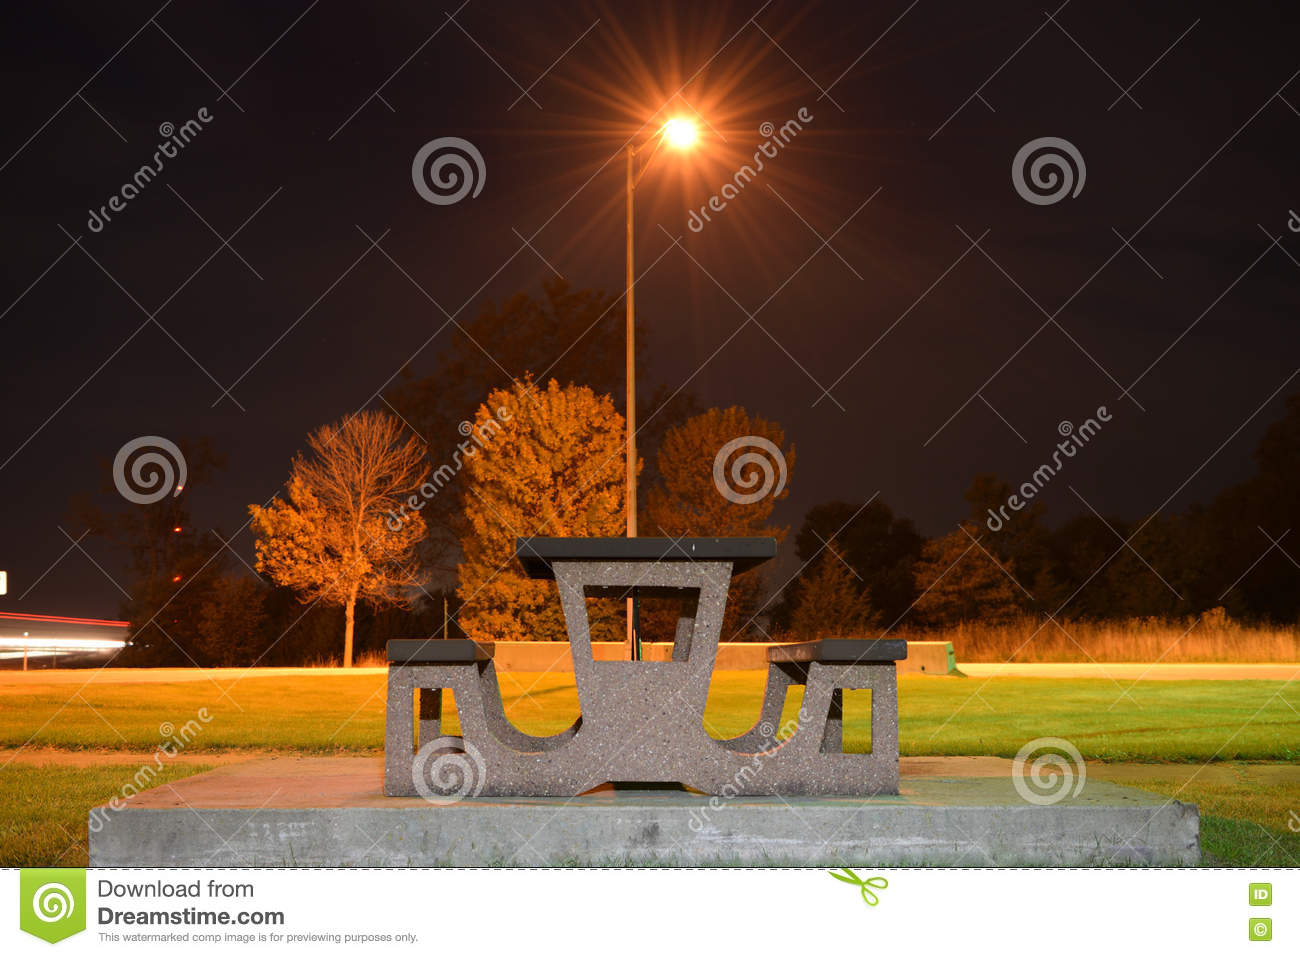 Park Bench At Night Stock Photo Image Of Outdoor Highway 81797012